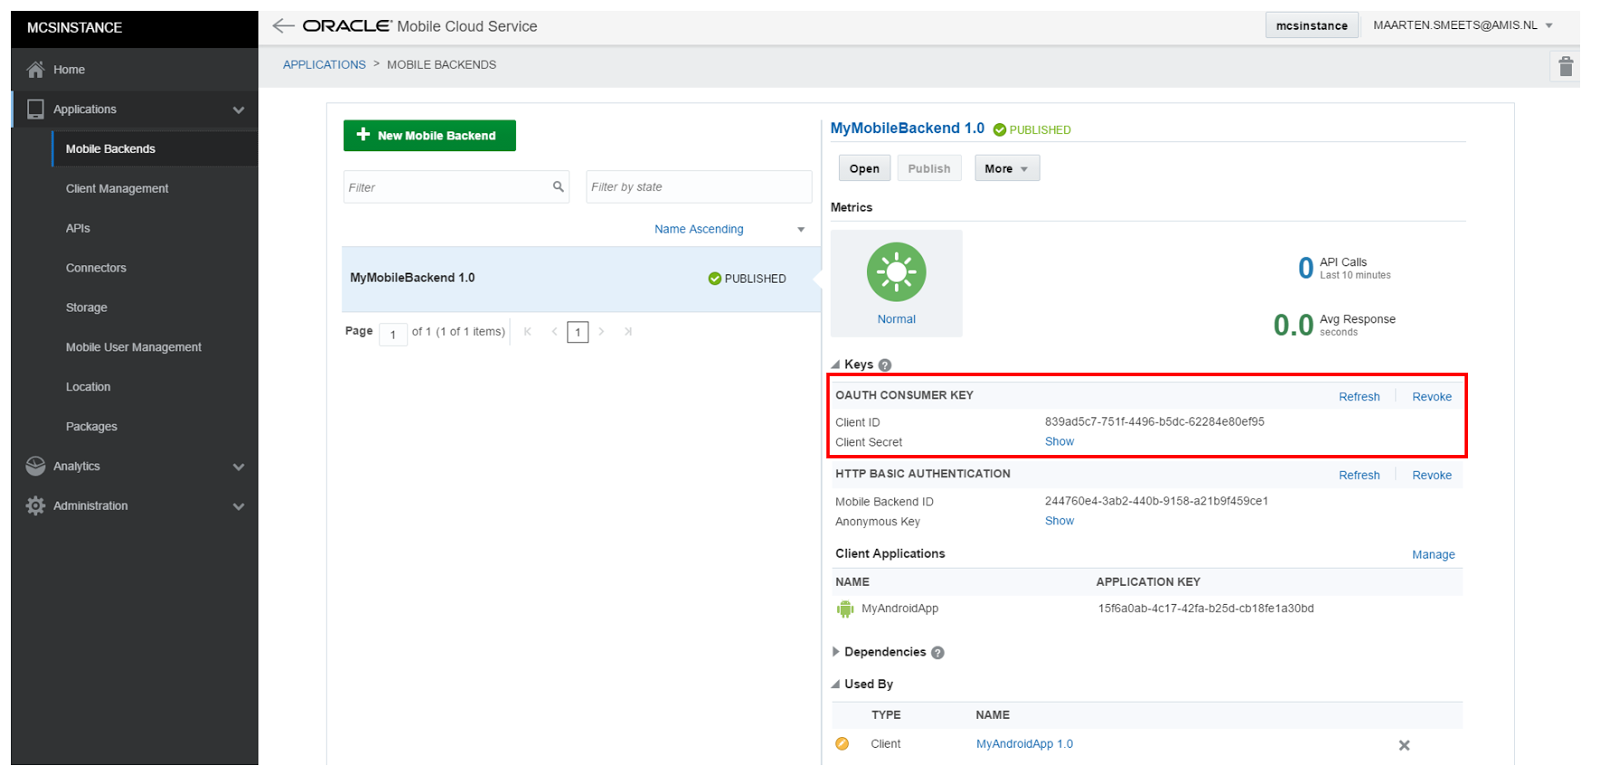 Oracle Mobile Cloud Service (MCS): An introduction to API